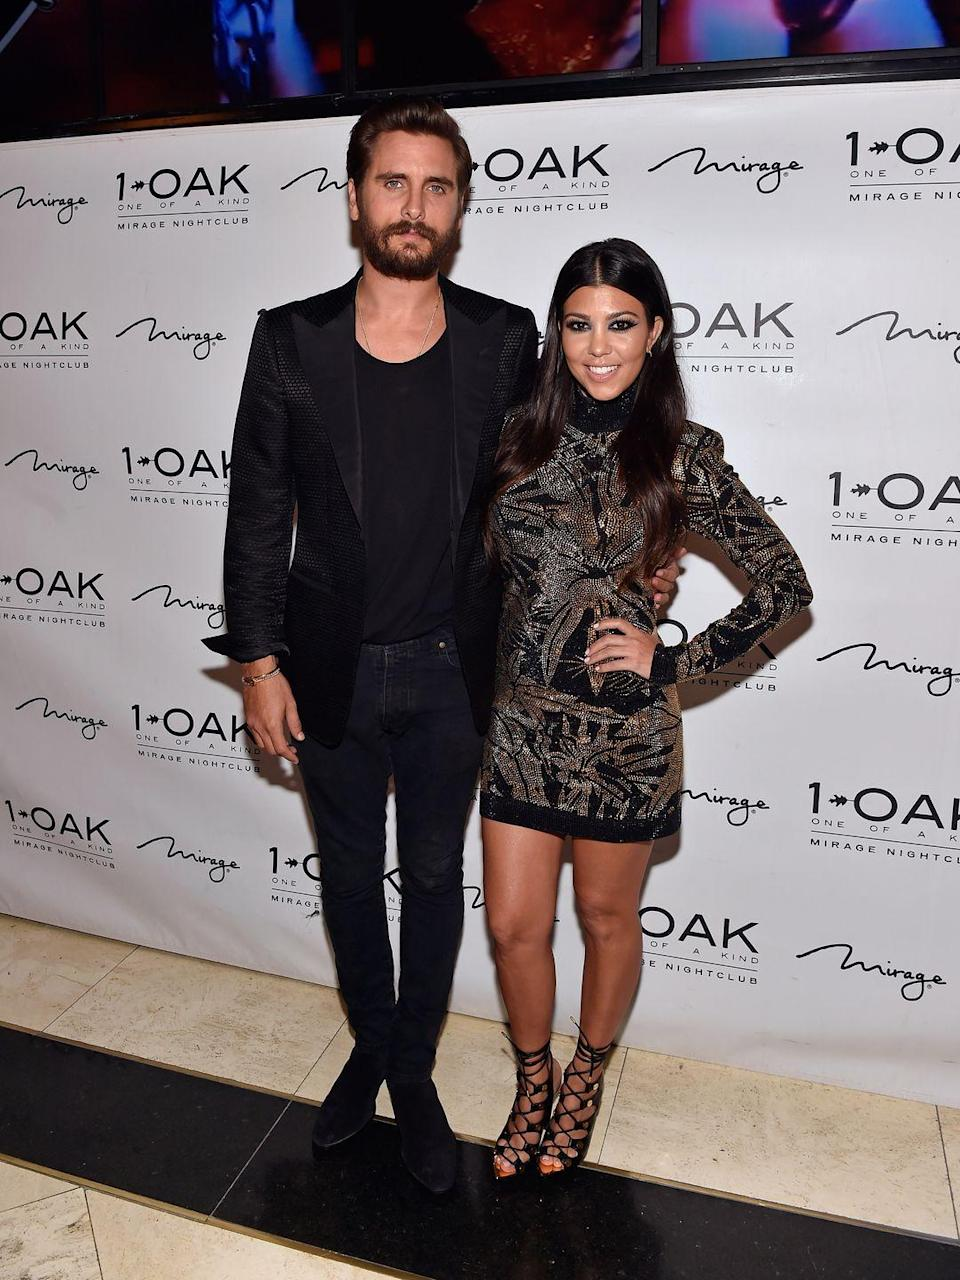 <p>Kourtney Kardashian and her sisters have made a name for themselves on <em>Keeping Up with the Kardashians</em>. As viewers, we've been along for the crazy Kourtney and Scott saga since the beginning. Despite their split, which aired on their show in 2015, Disick remains an integral part of the reality series. </p>